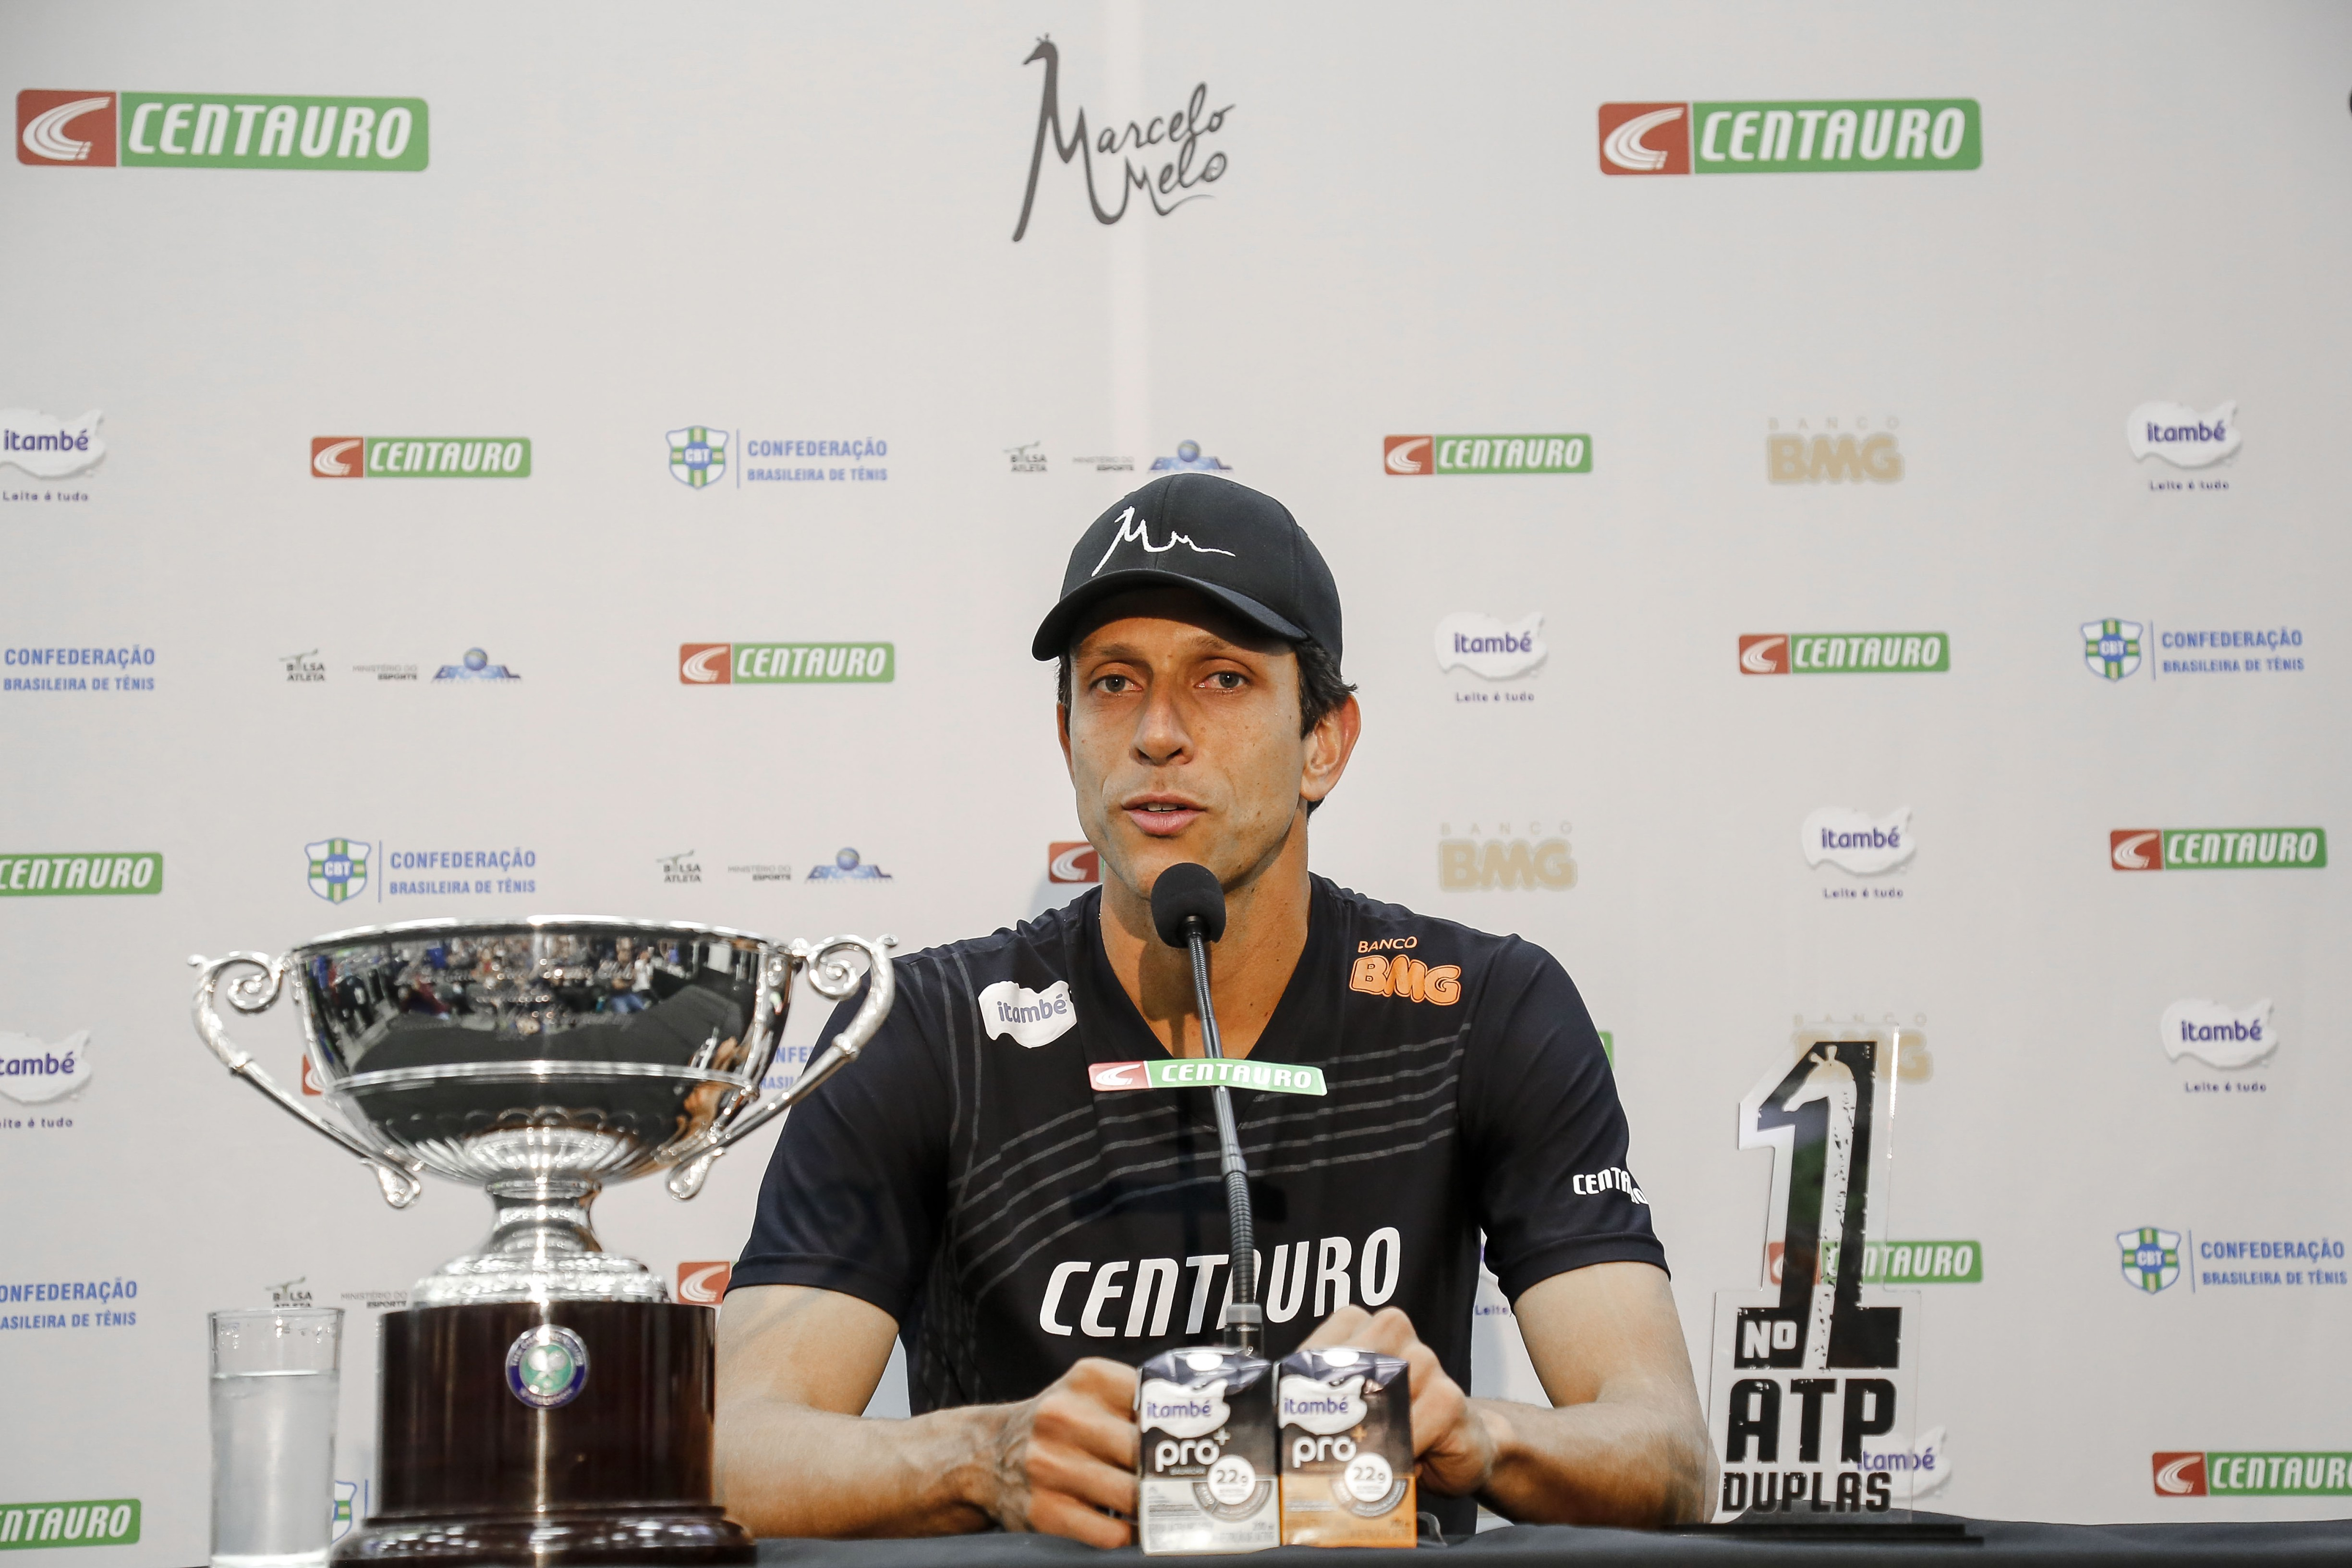 US Open e ATP Finals, novas metas de Marcelo Melo